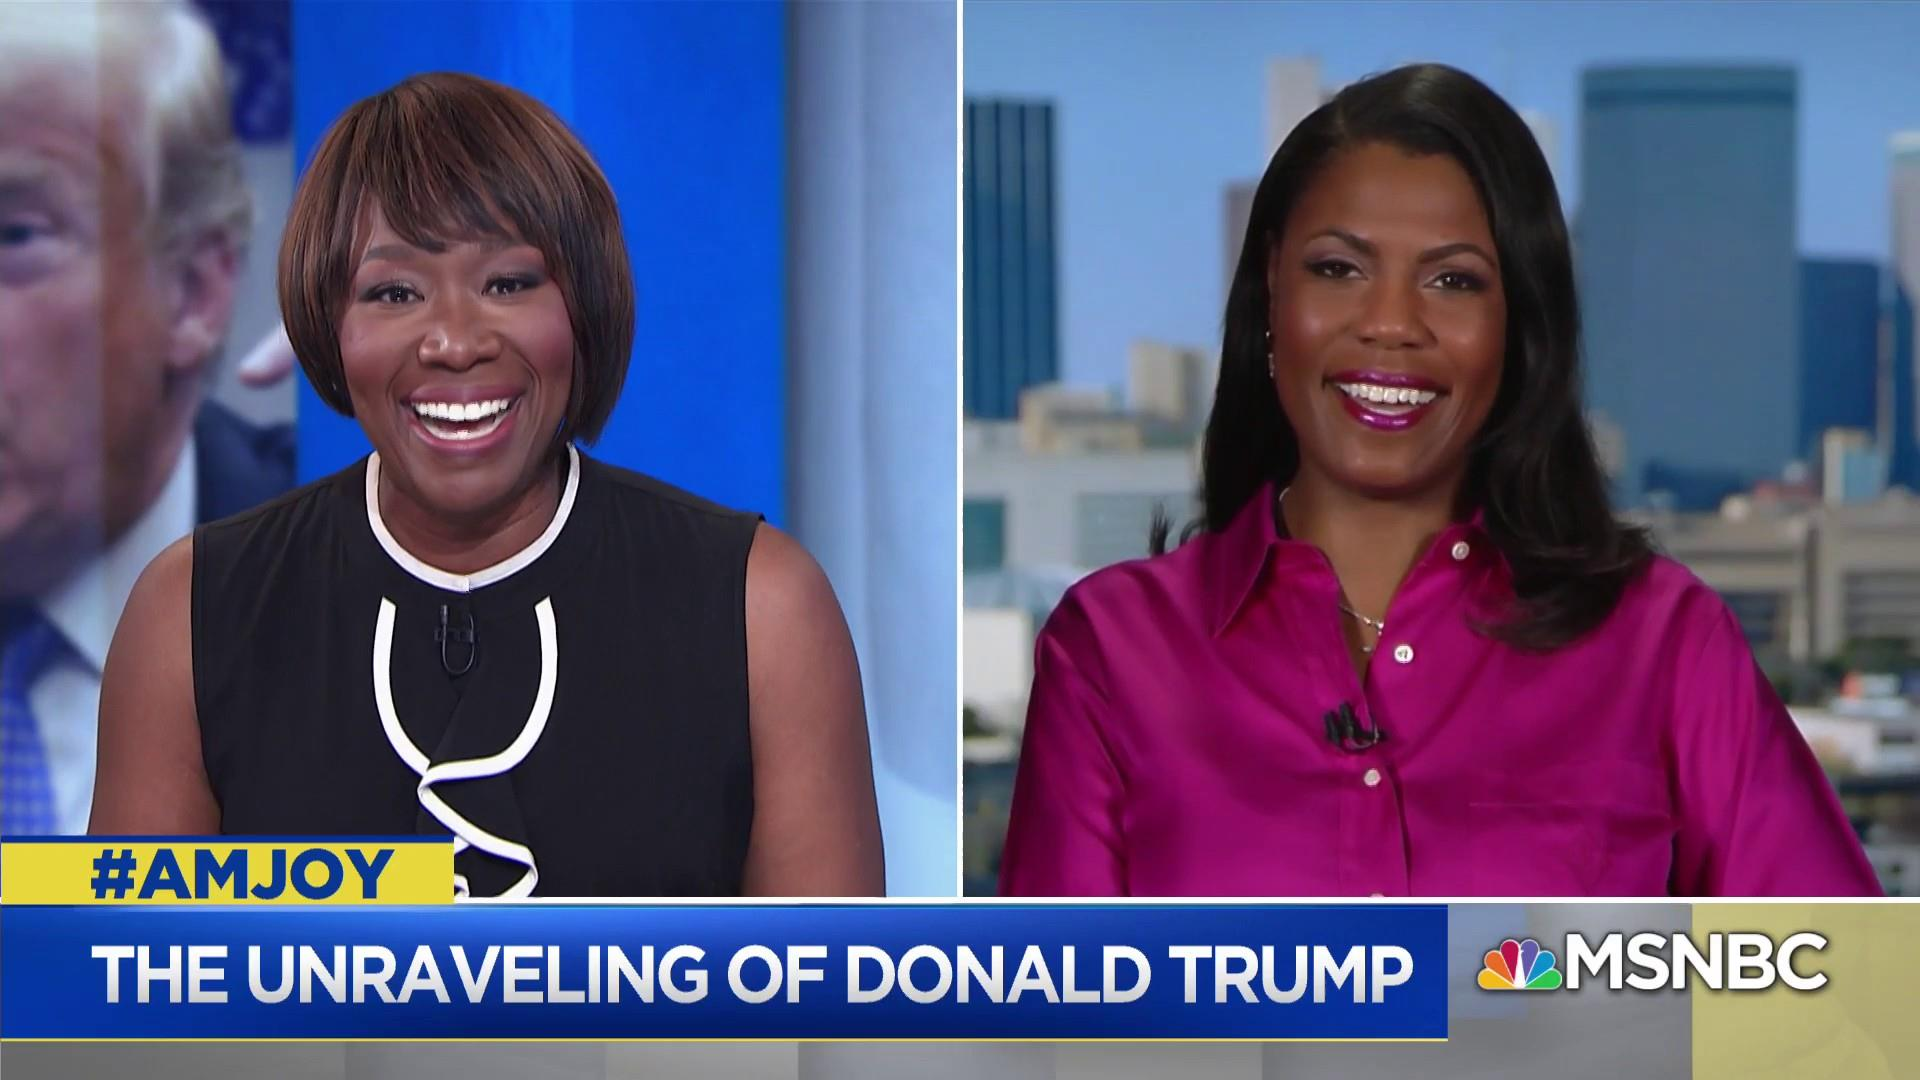 Omarosa: Trump is trying to use his limited intellect to fool people